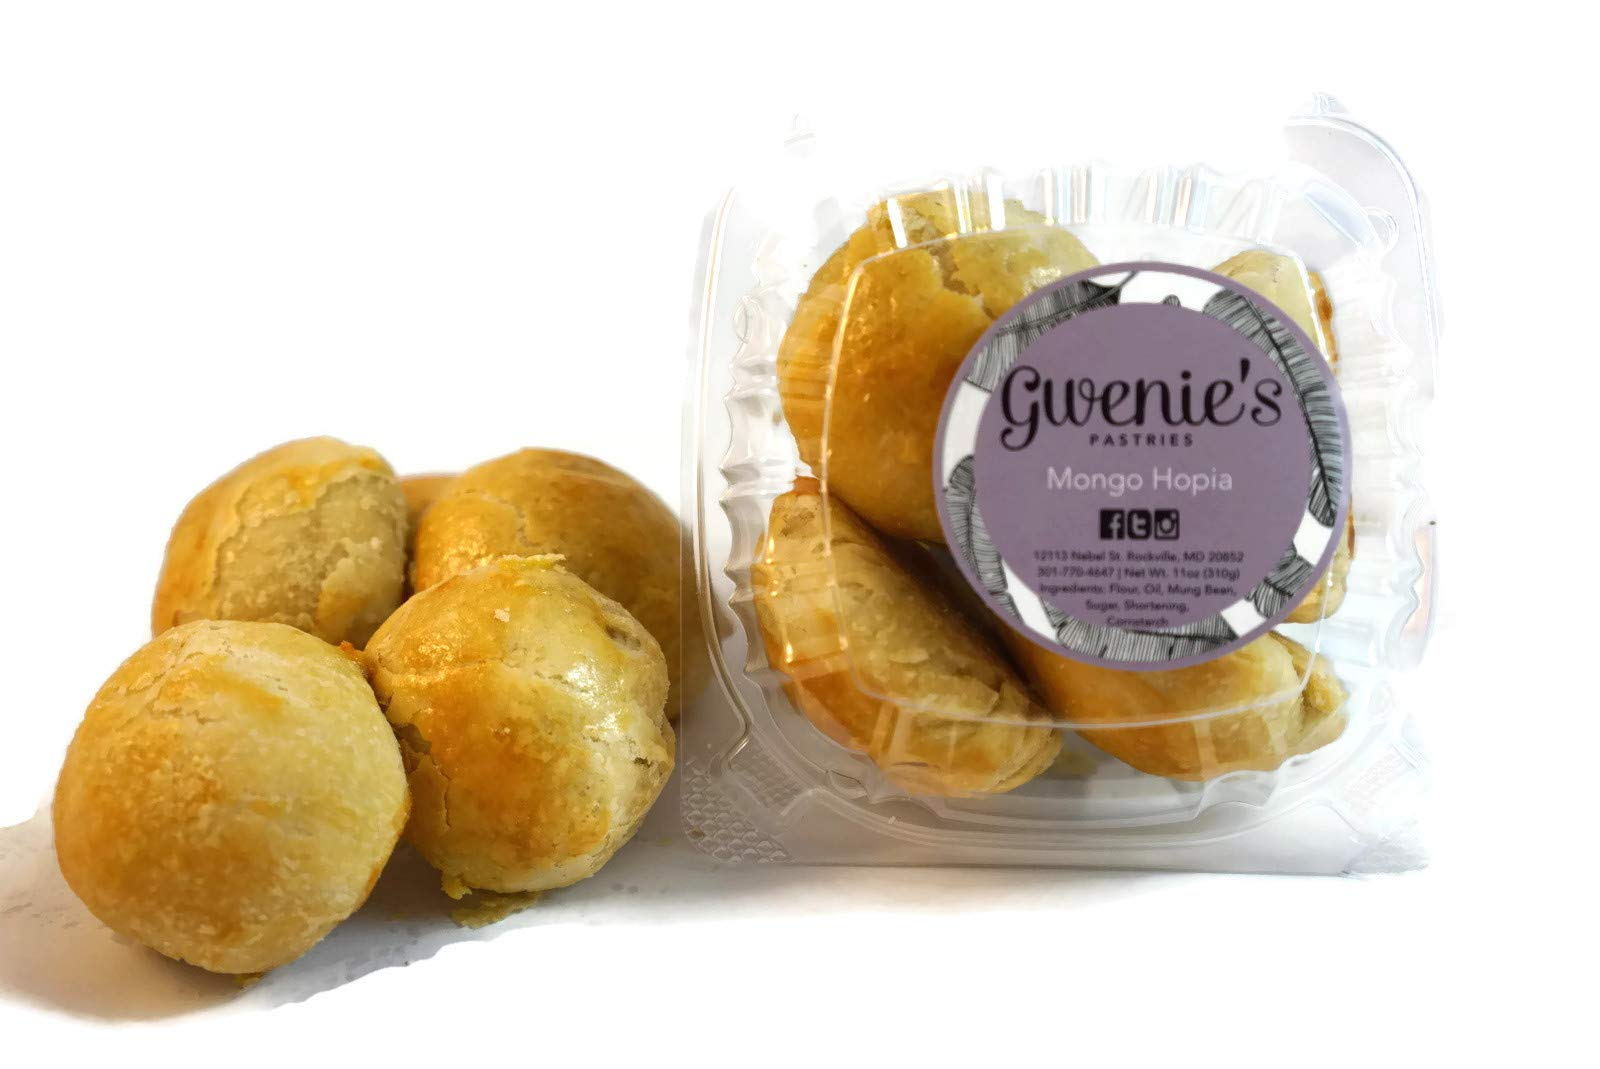 Gwenie's Pastries, Mongo Hopia (1 Pack/5 pieces per pack)